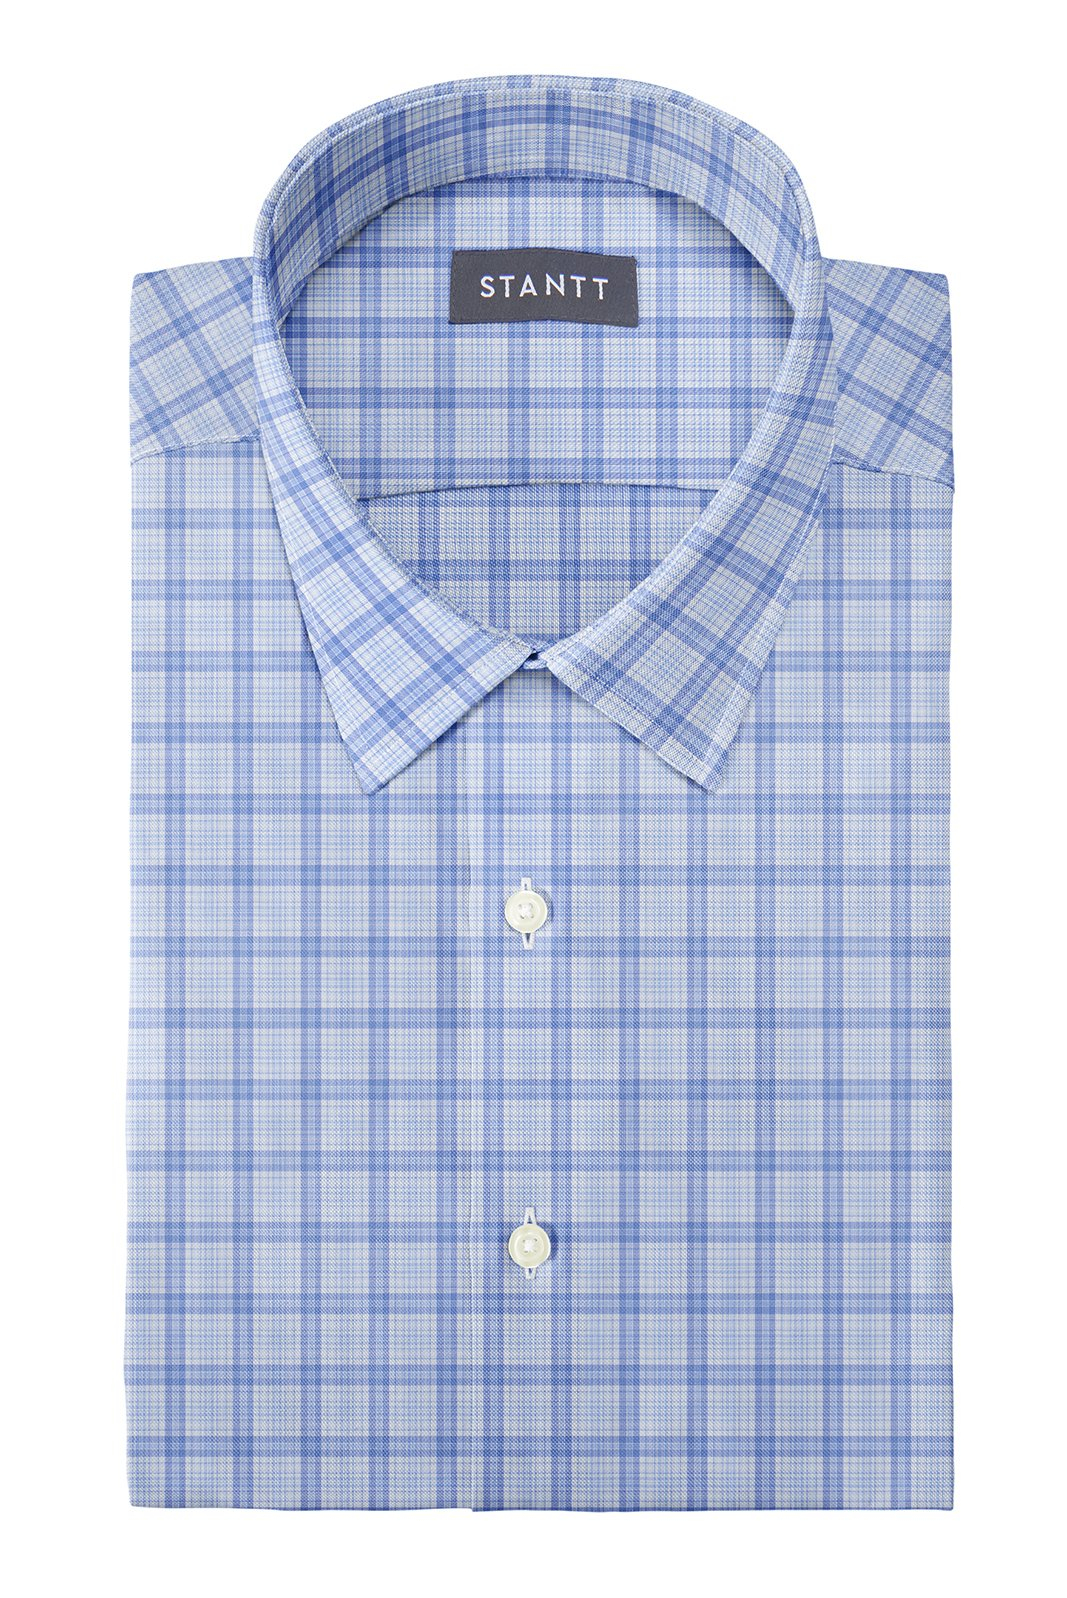 Matrix Blue on Blue Dress Plaid: Semi-Spread Collar, Barrel Cuff